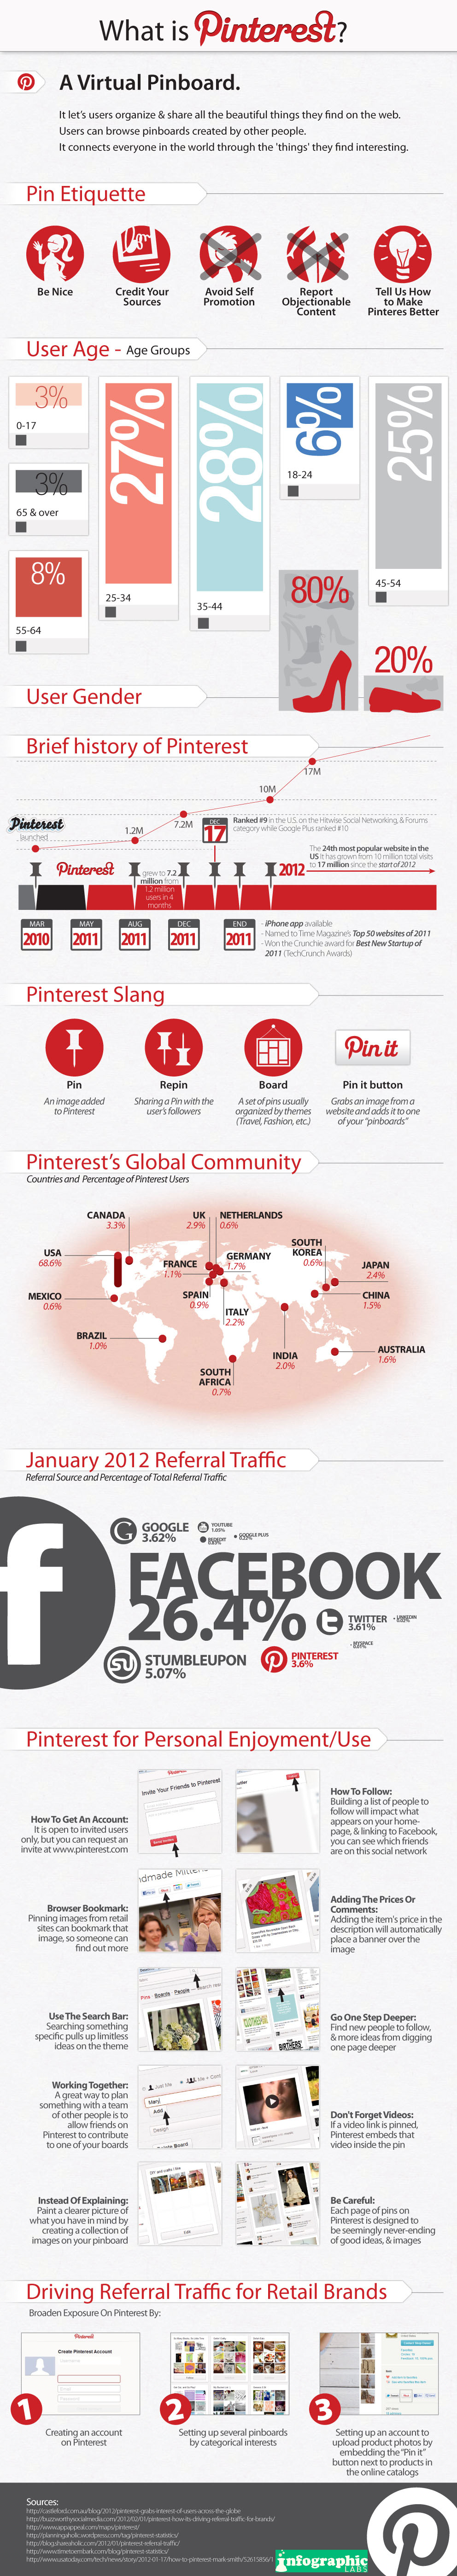 What is Pinterest